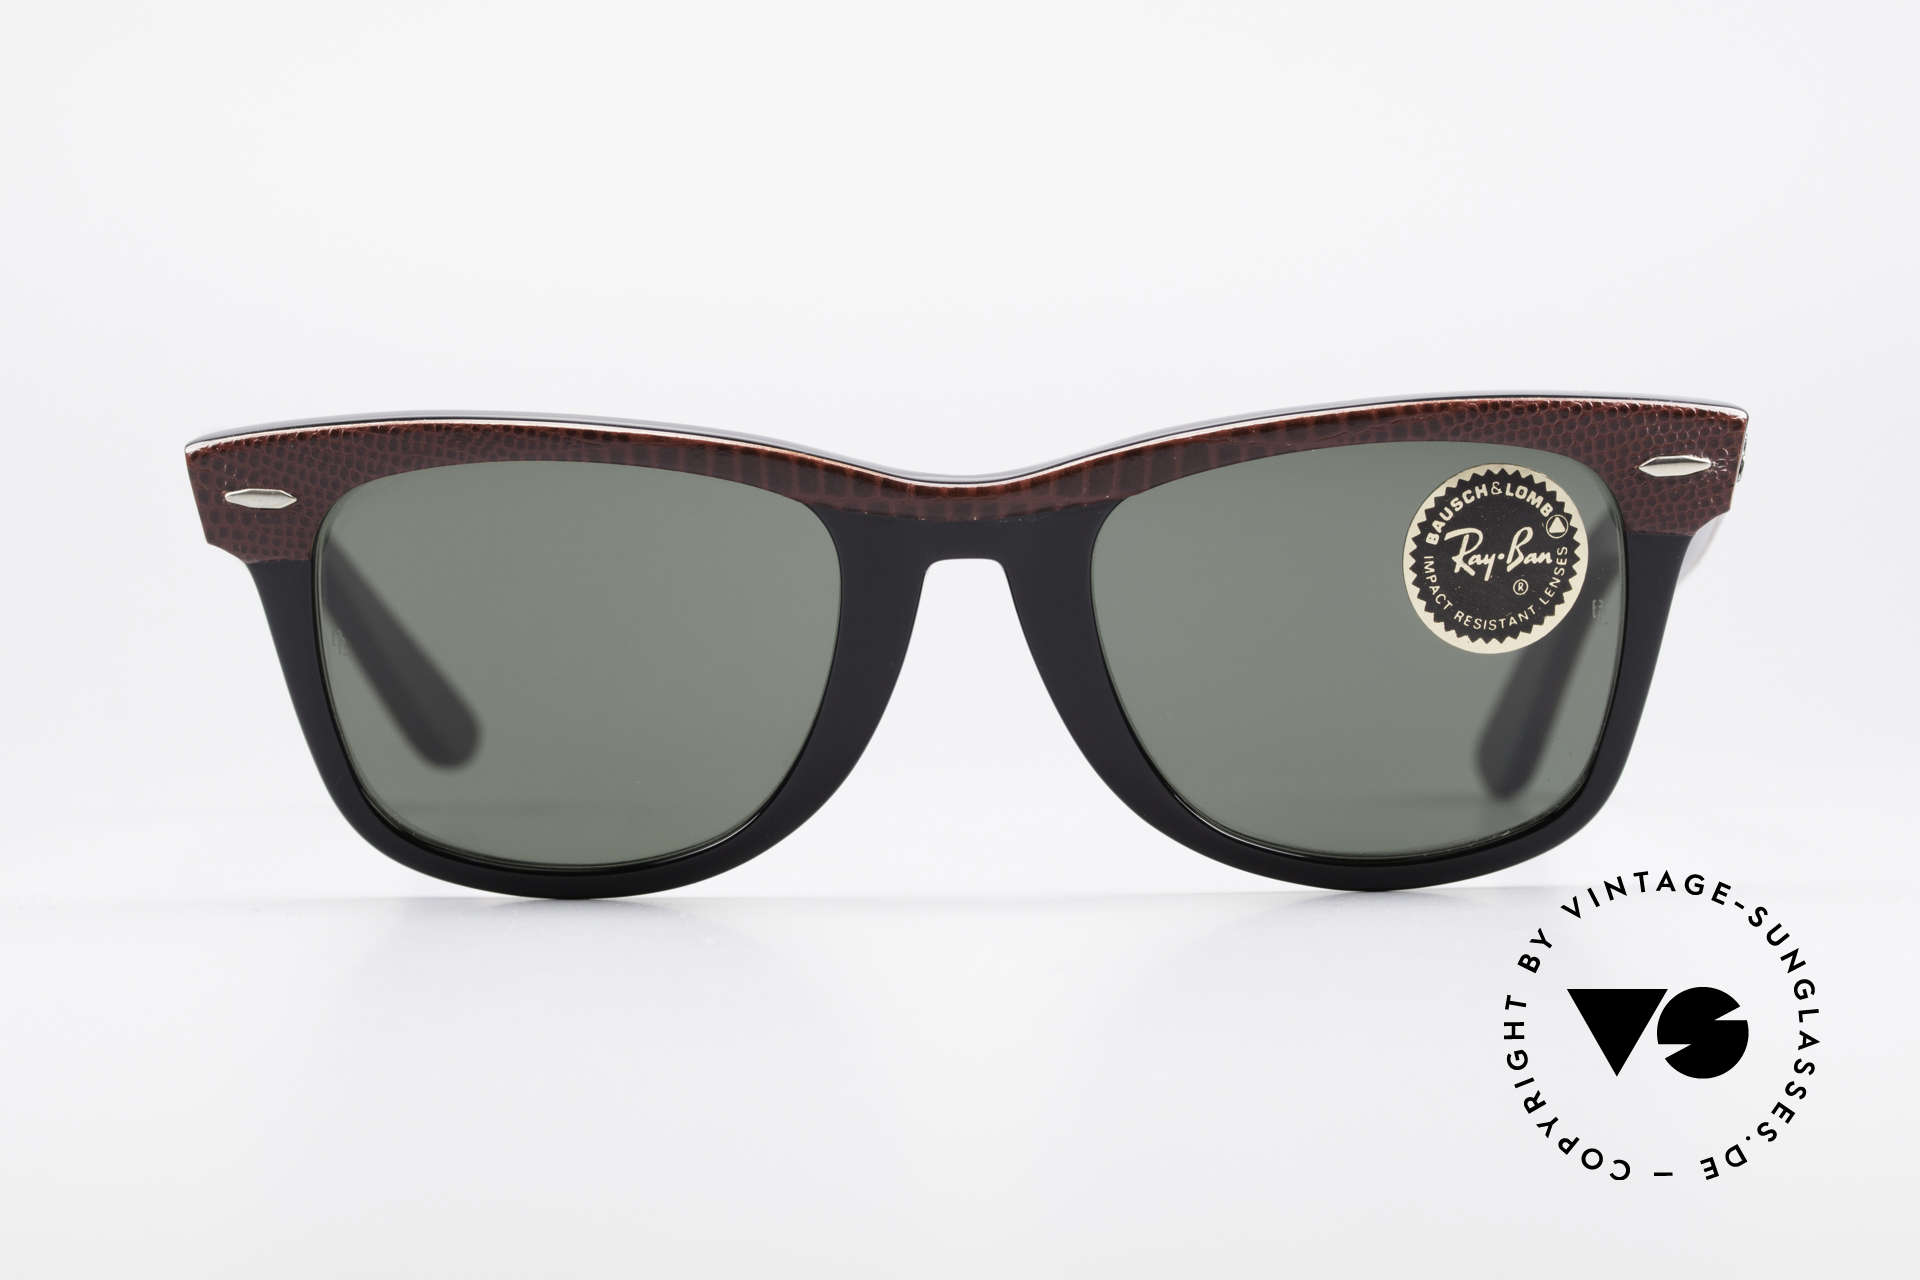 Ray Ban Wayfarer I Limited Leather Sunglasses, ultra rare LIMITED EDITION: Burgundy Leather!, Made for Men and Women